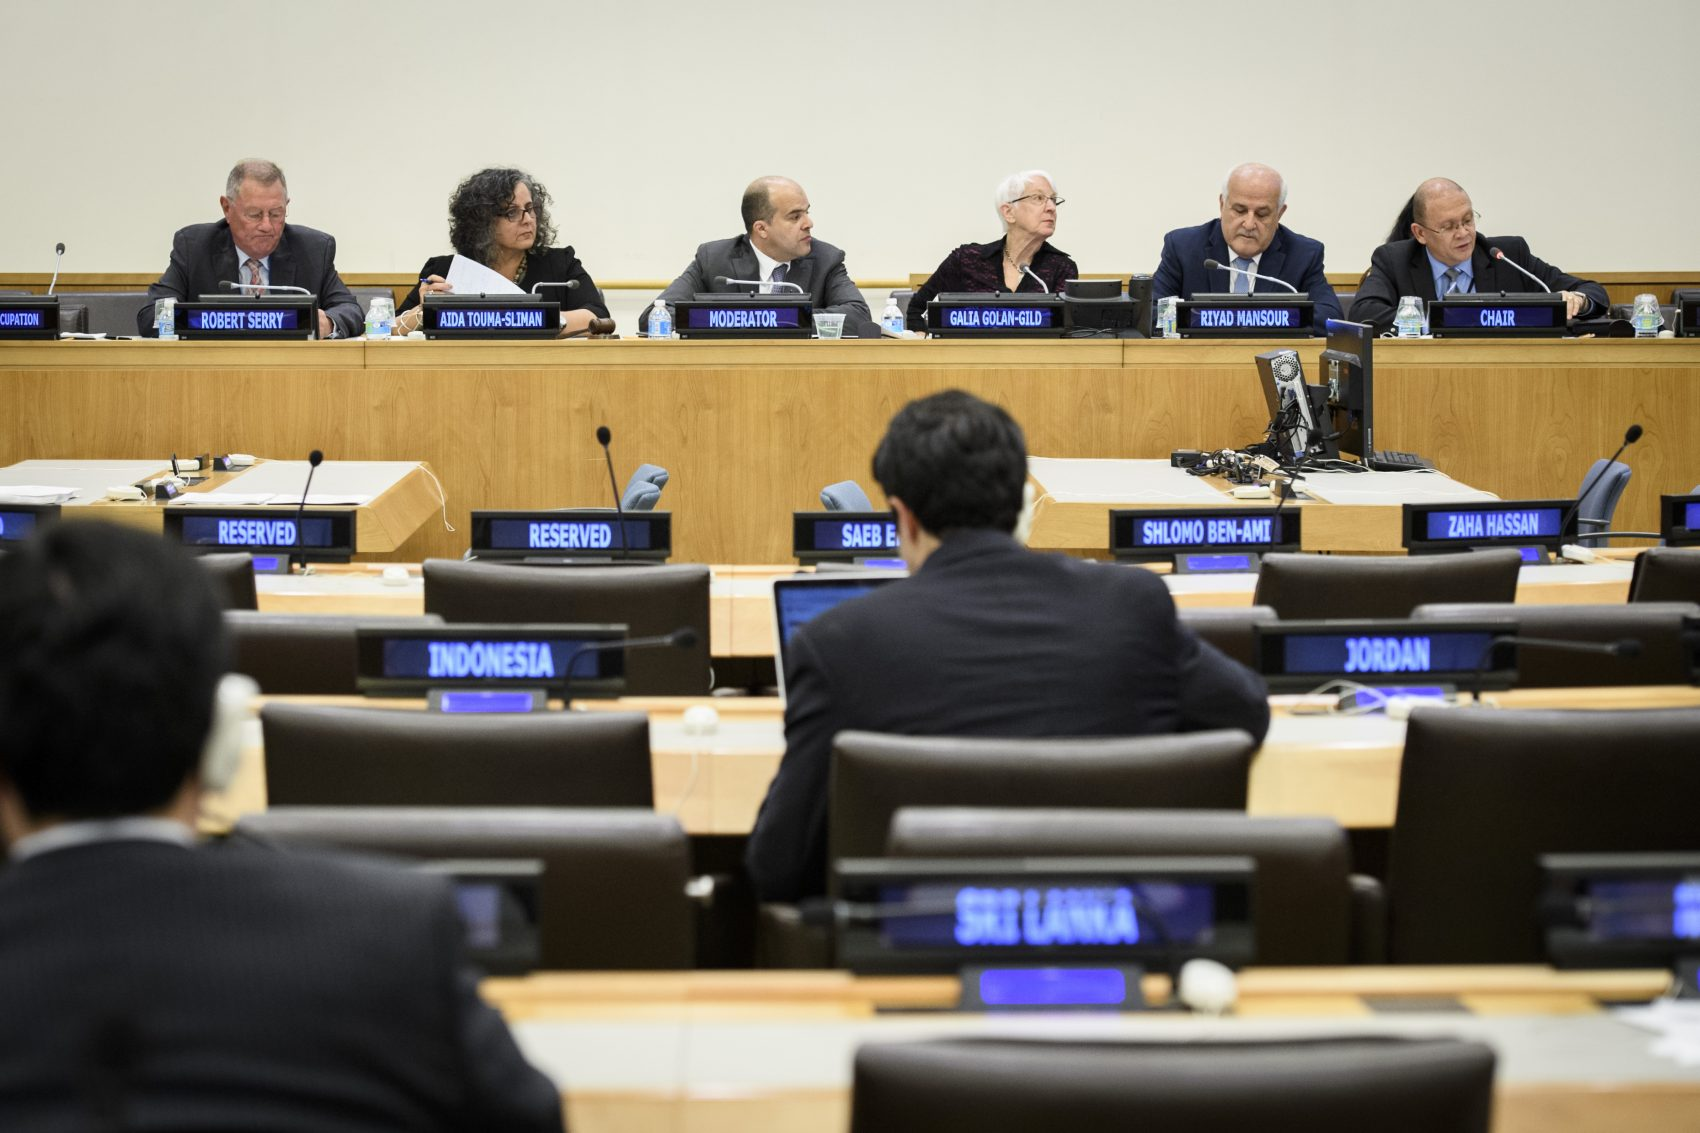 UN-forum-to-mark-50-years-of-occupation-June-2017_3-e1504880109786